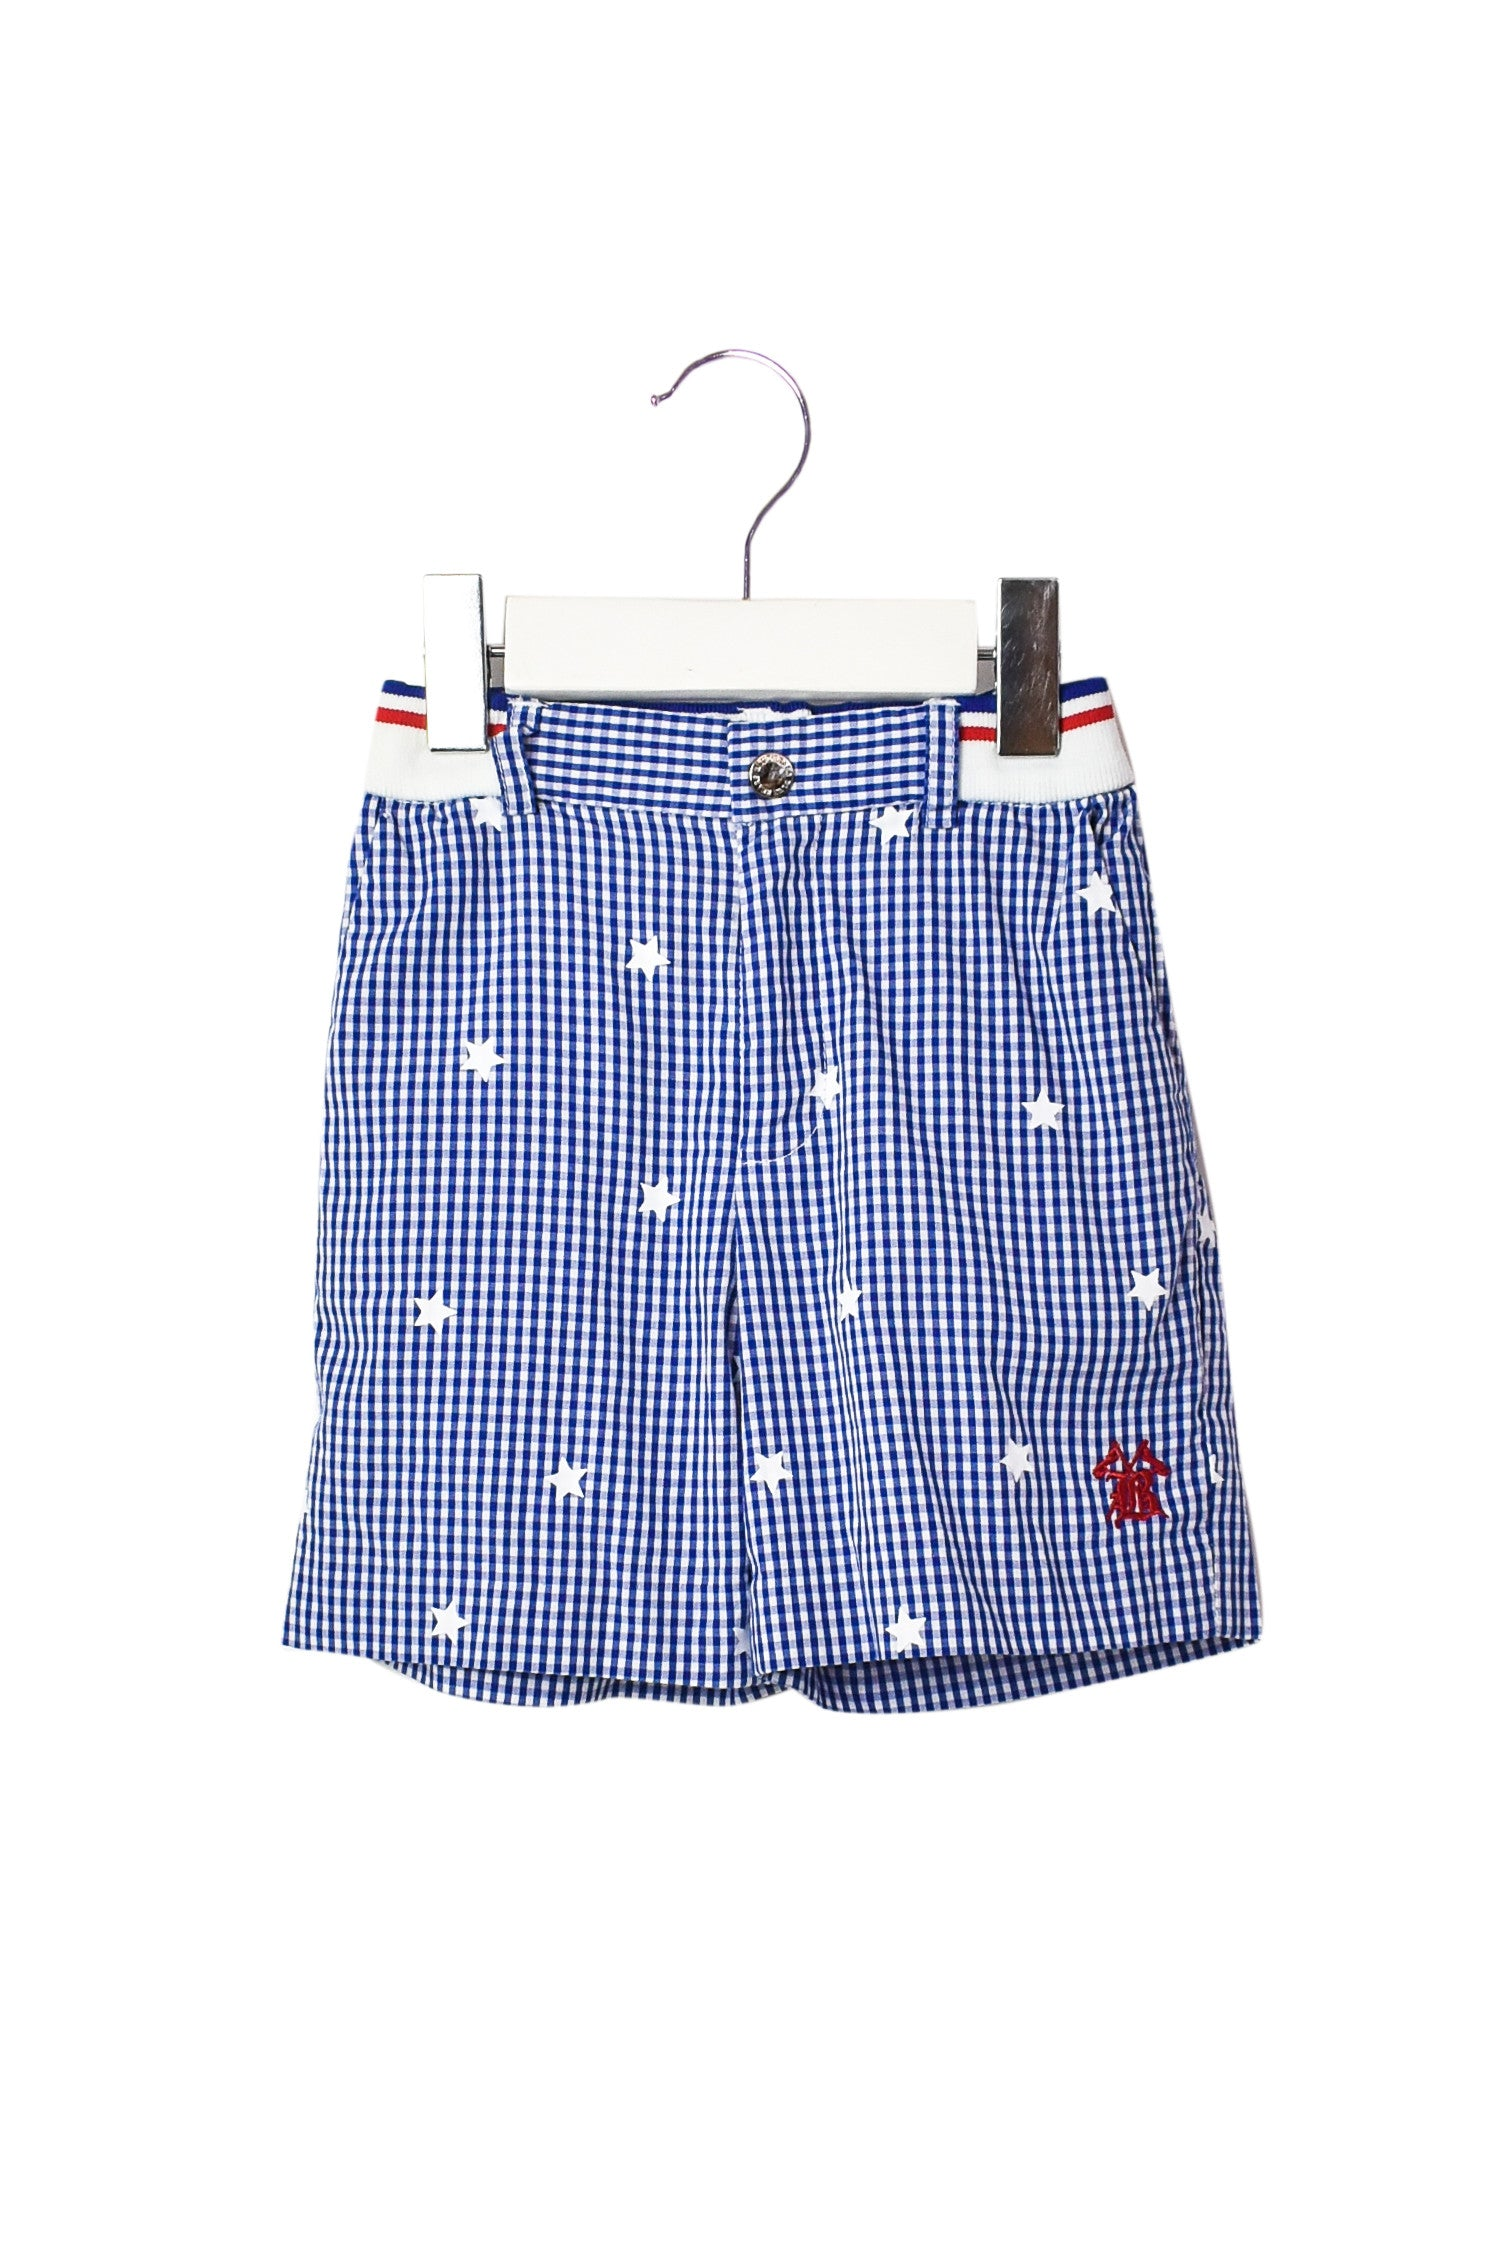 10005010 Nicholas & Bears Kids~ Shorts 2T, Nicholas & Bears Retykle | Online Baby & Kids Clothing Hong Kong